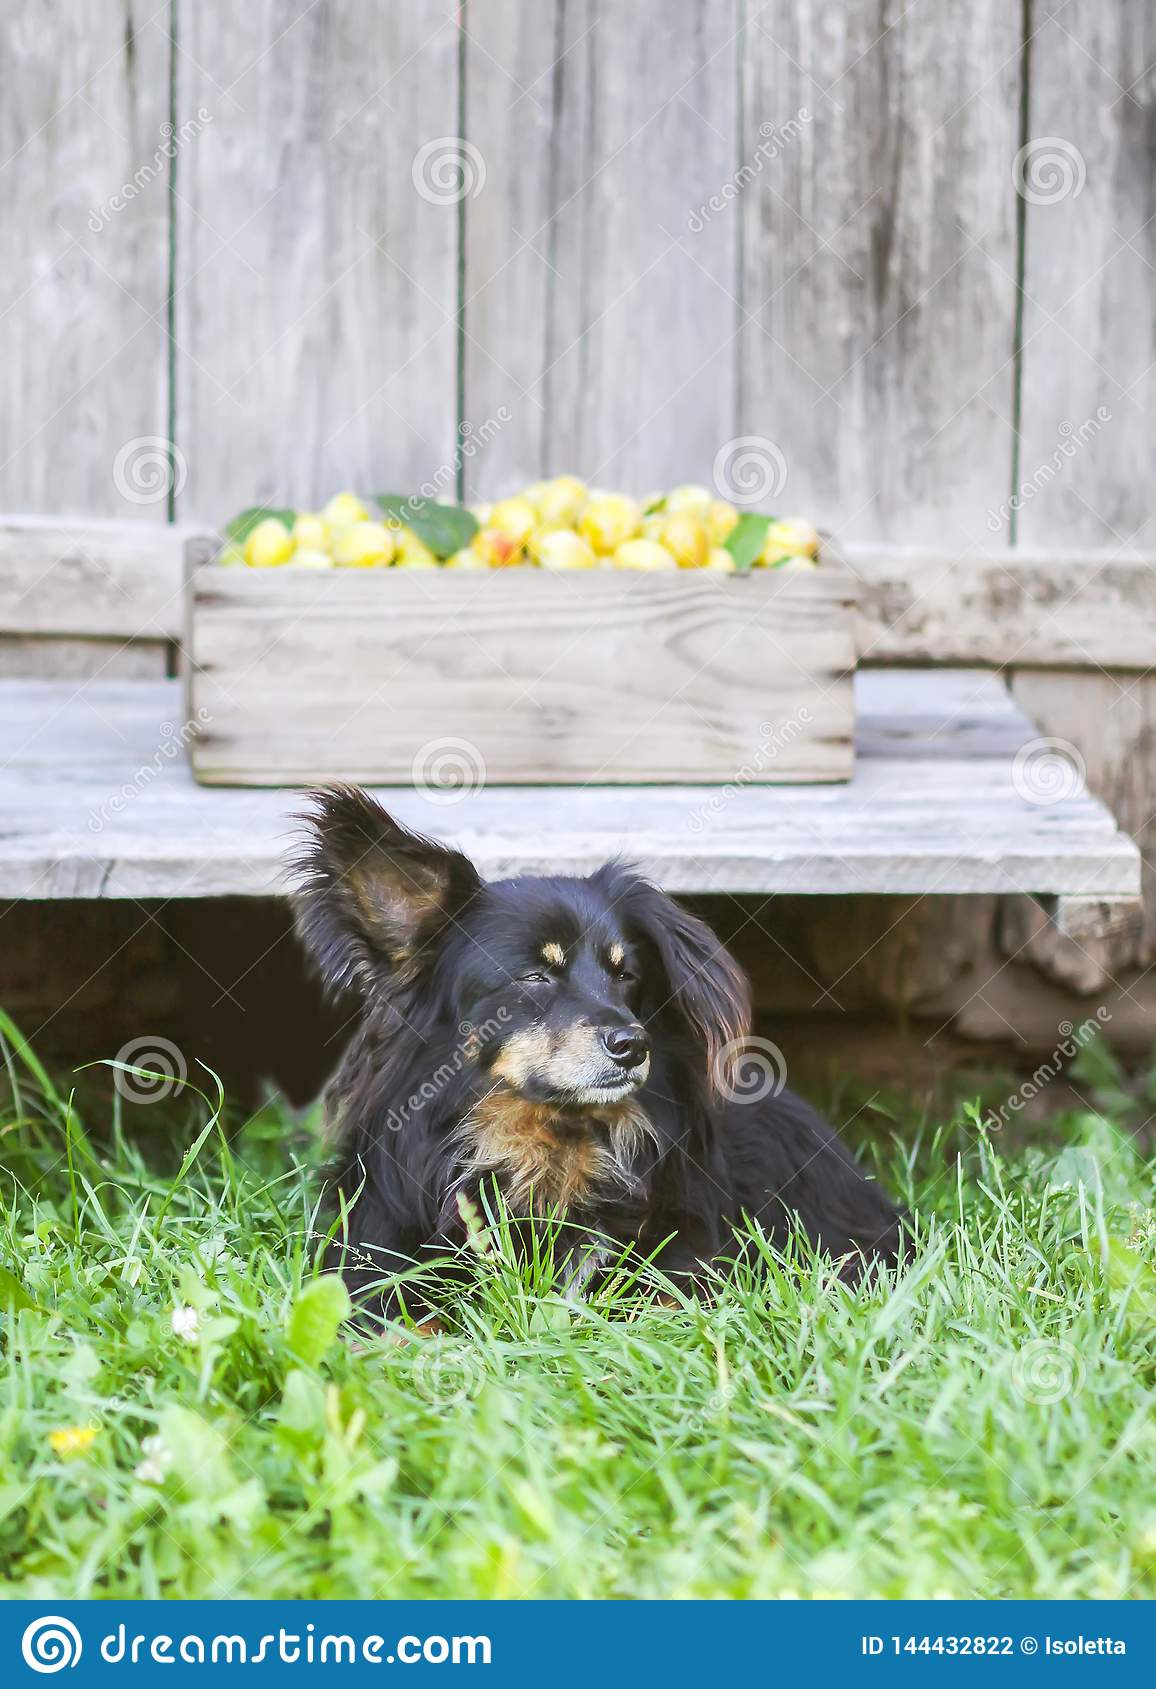 Fresh yellow plums. Ripe fruits in a wooden box on rough boards background. A black dog guards the harvest